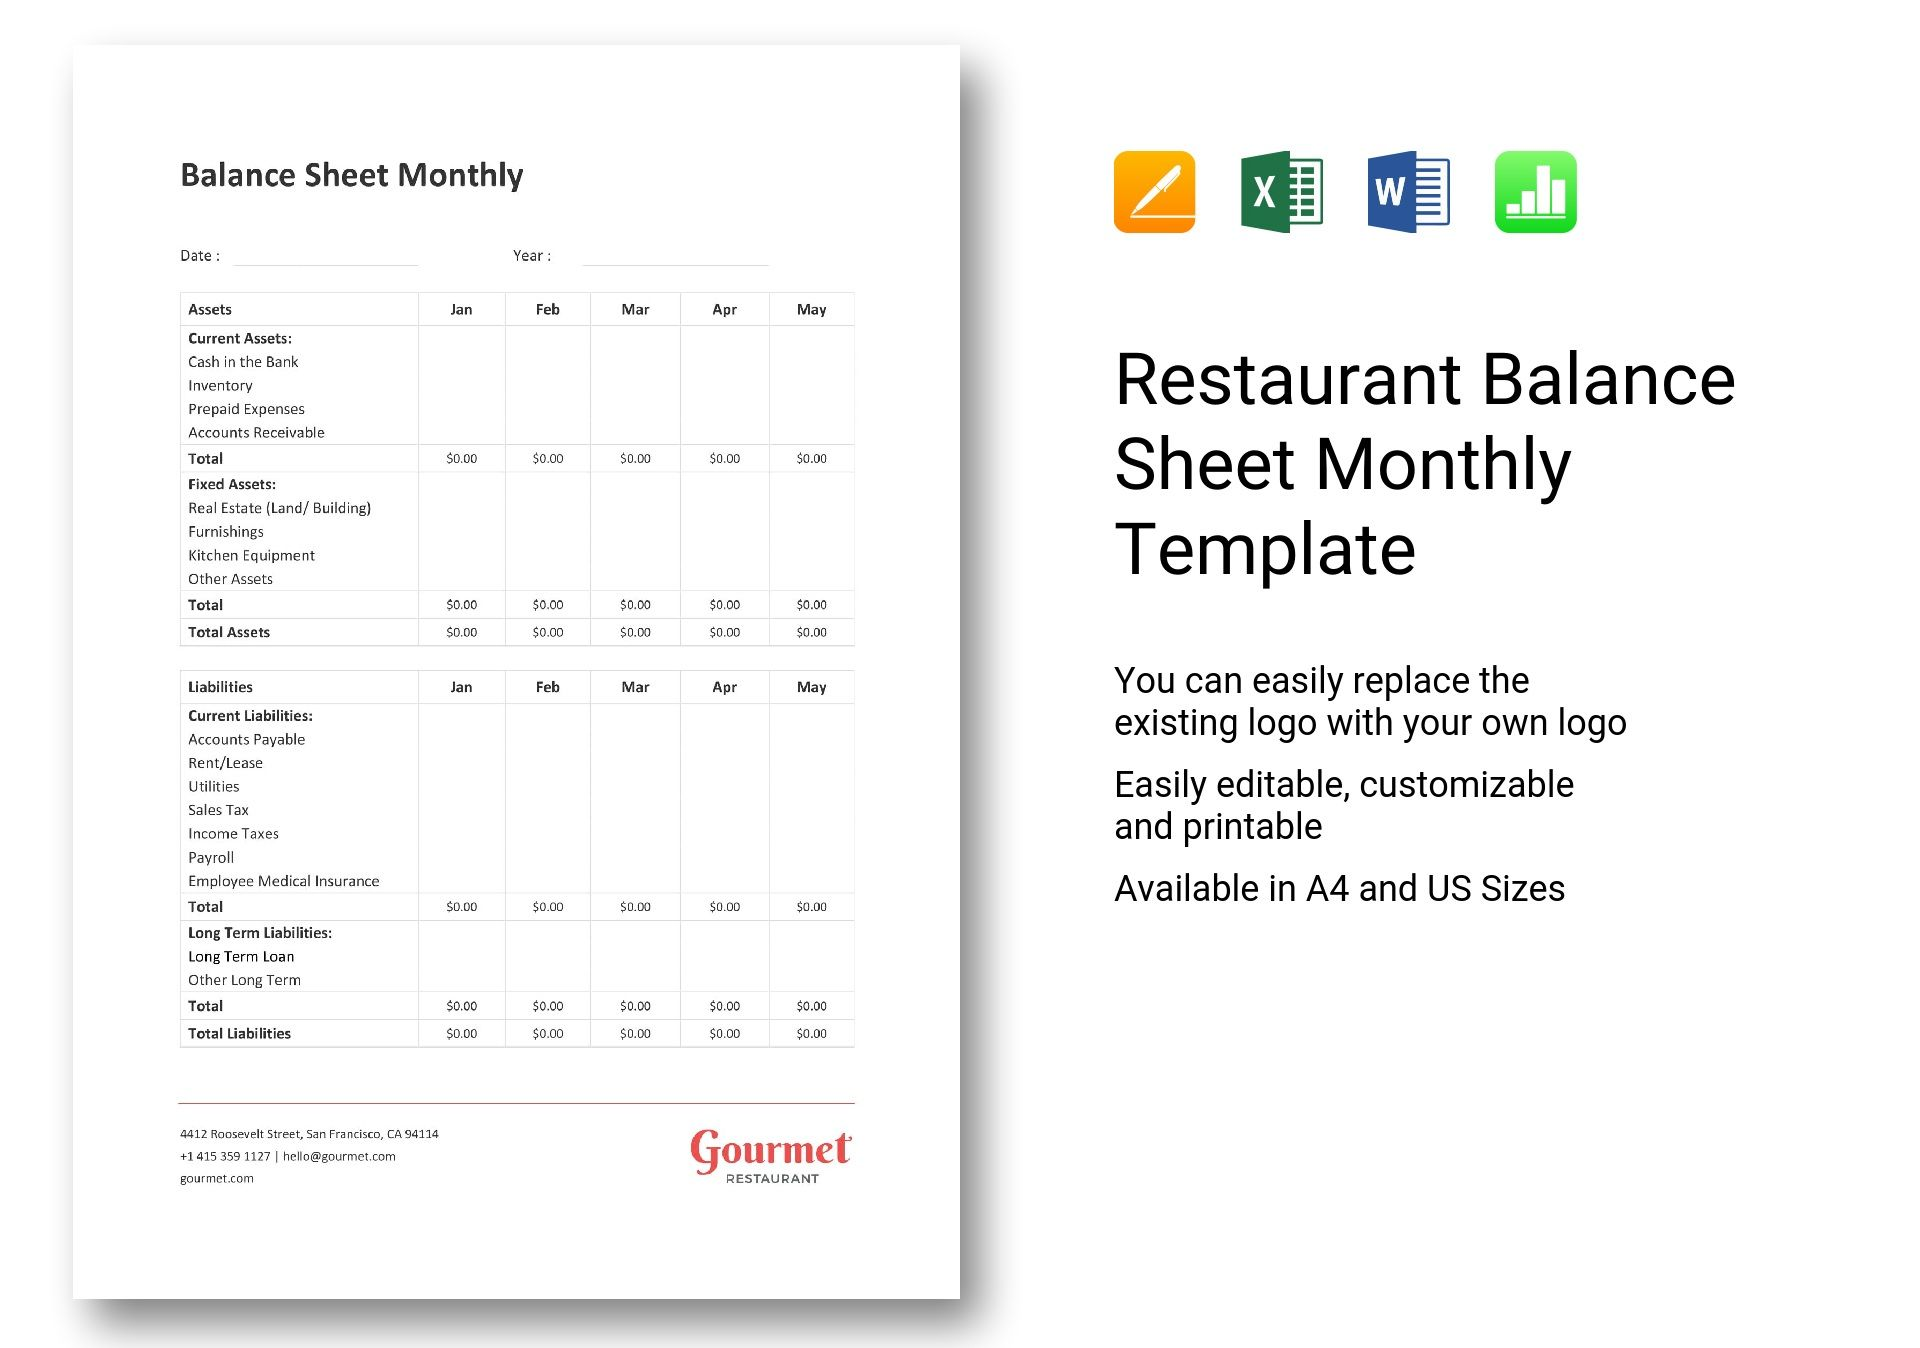 Restaurant Balance Sheet Monthly Template In Word Excel